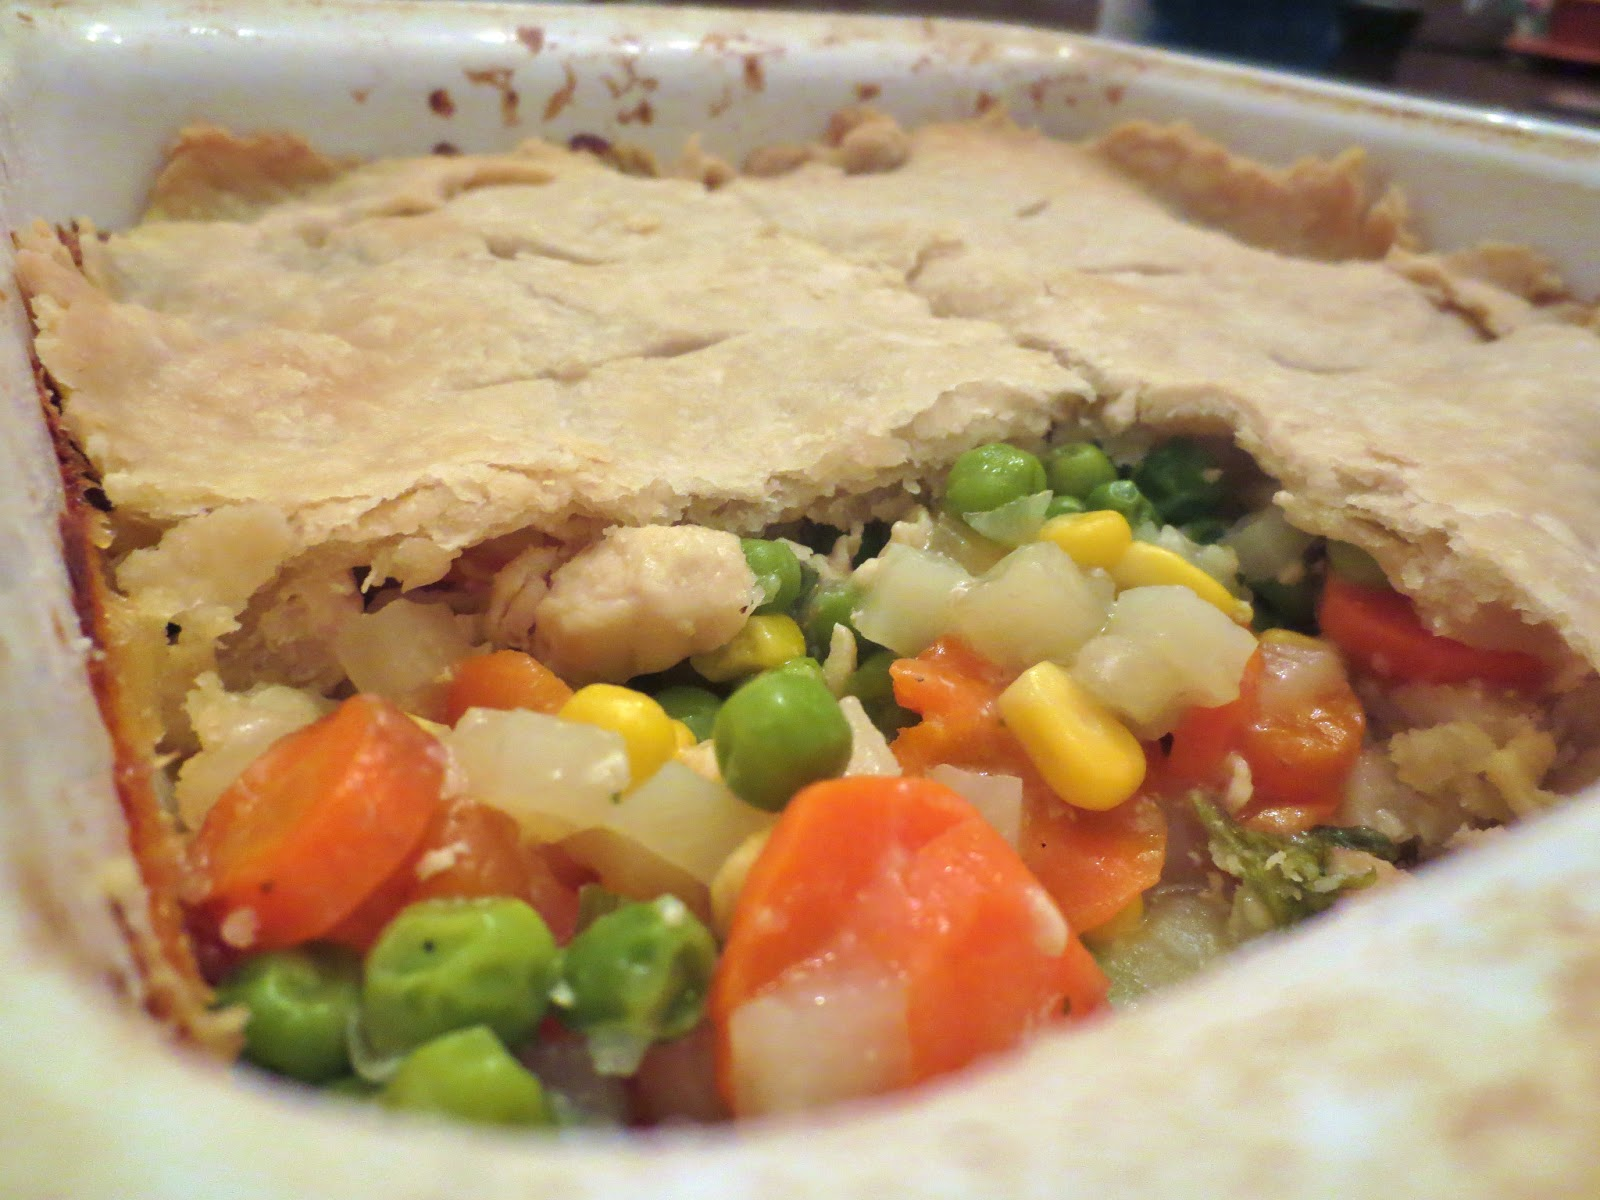 Princesses, Pies, & Preschool Pizzazz: Monday Meals: Chicken Pot Pie